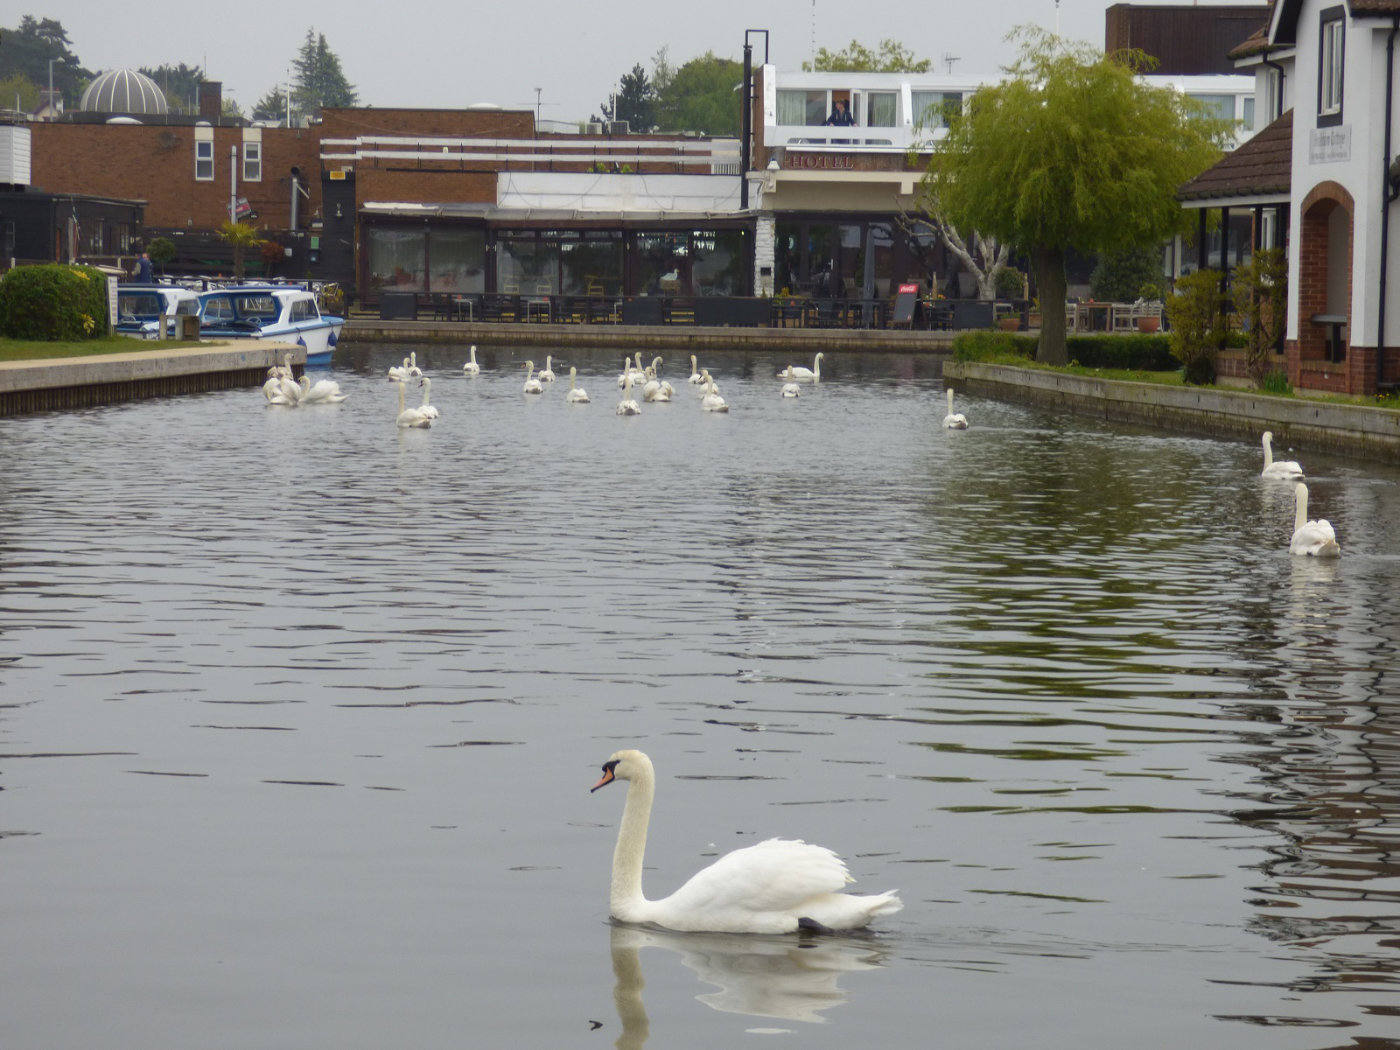 Swans in Wroxham Village